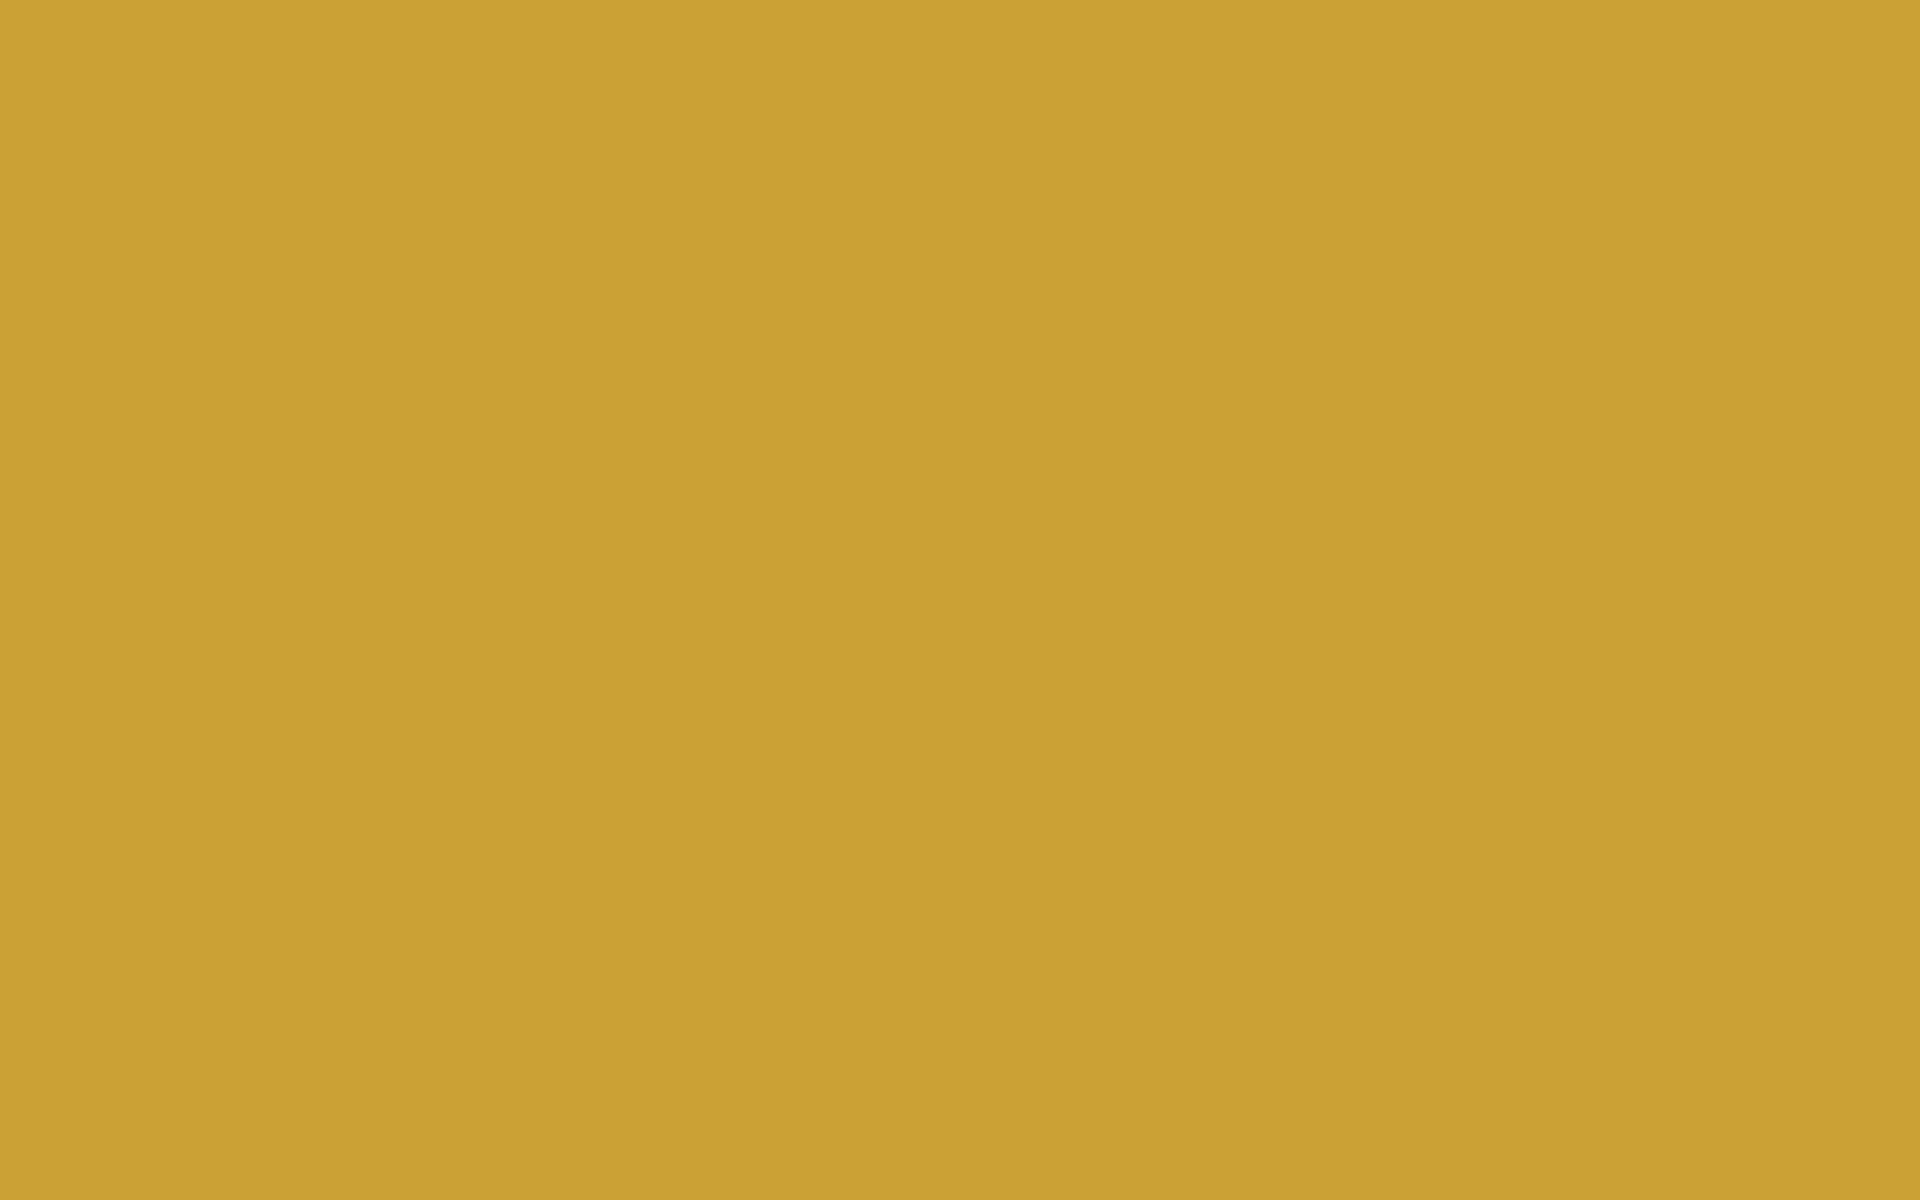 Gold Color Sheen gold solid color 1920x1200